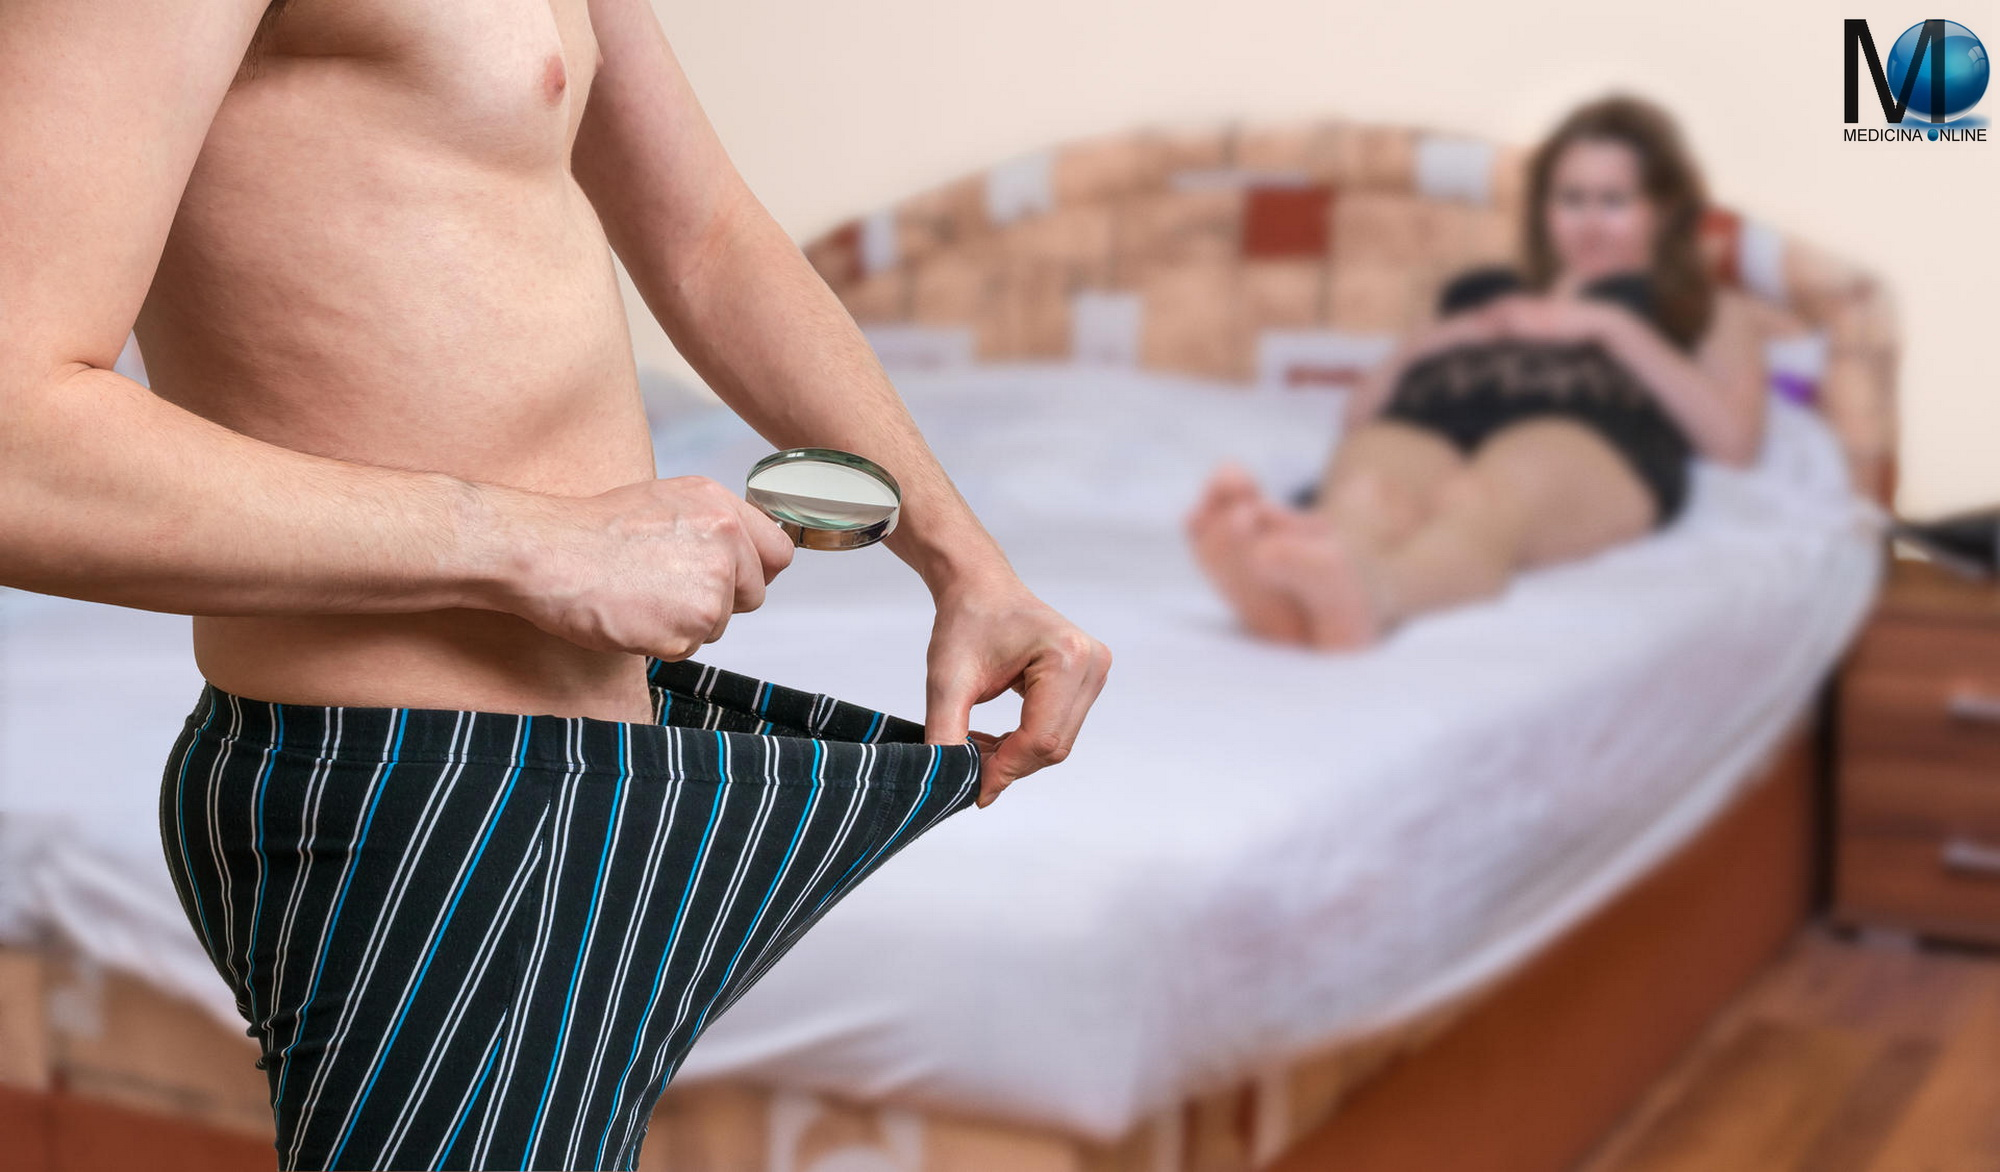 La dimensione del pene ideale per le donne | professioneriposo.it